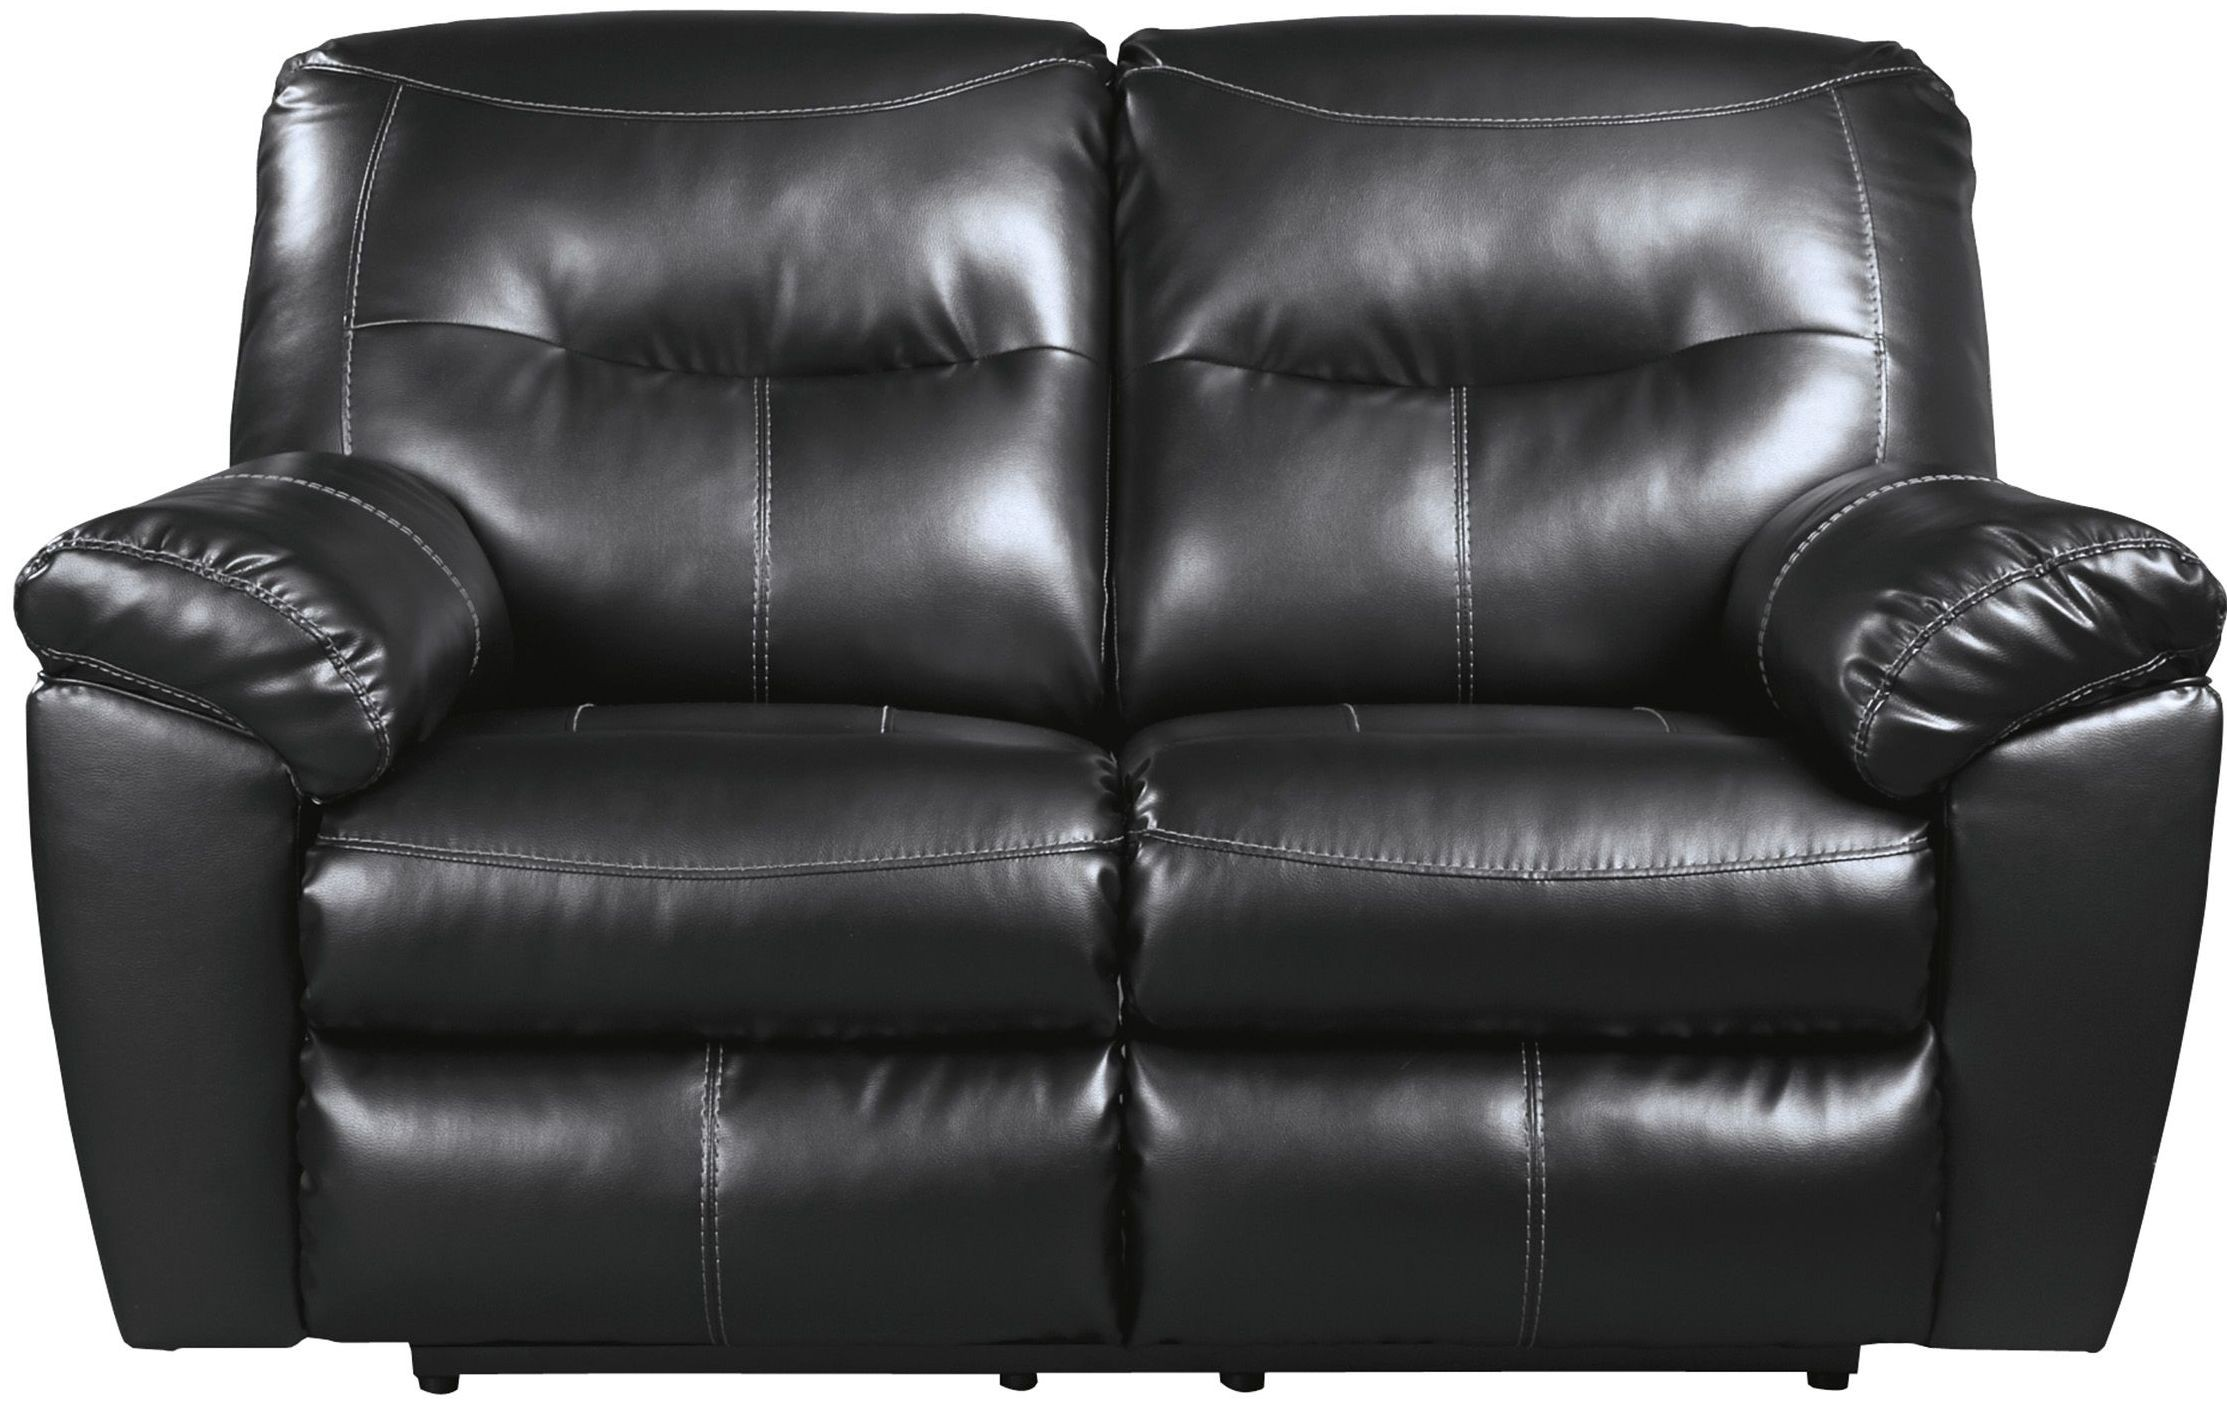 Kilzer Durablend Black Reclining Loveseat From Ashley 8470186 Coleman Furniture